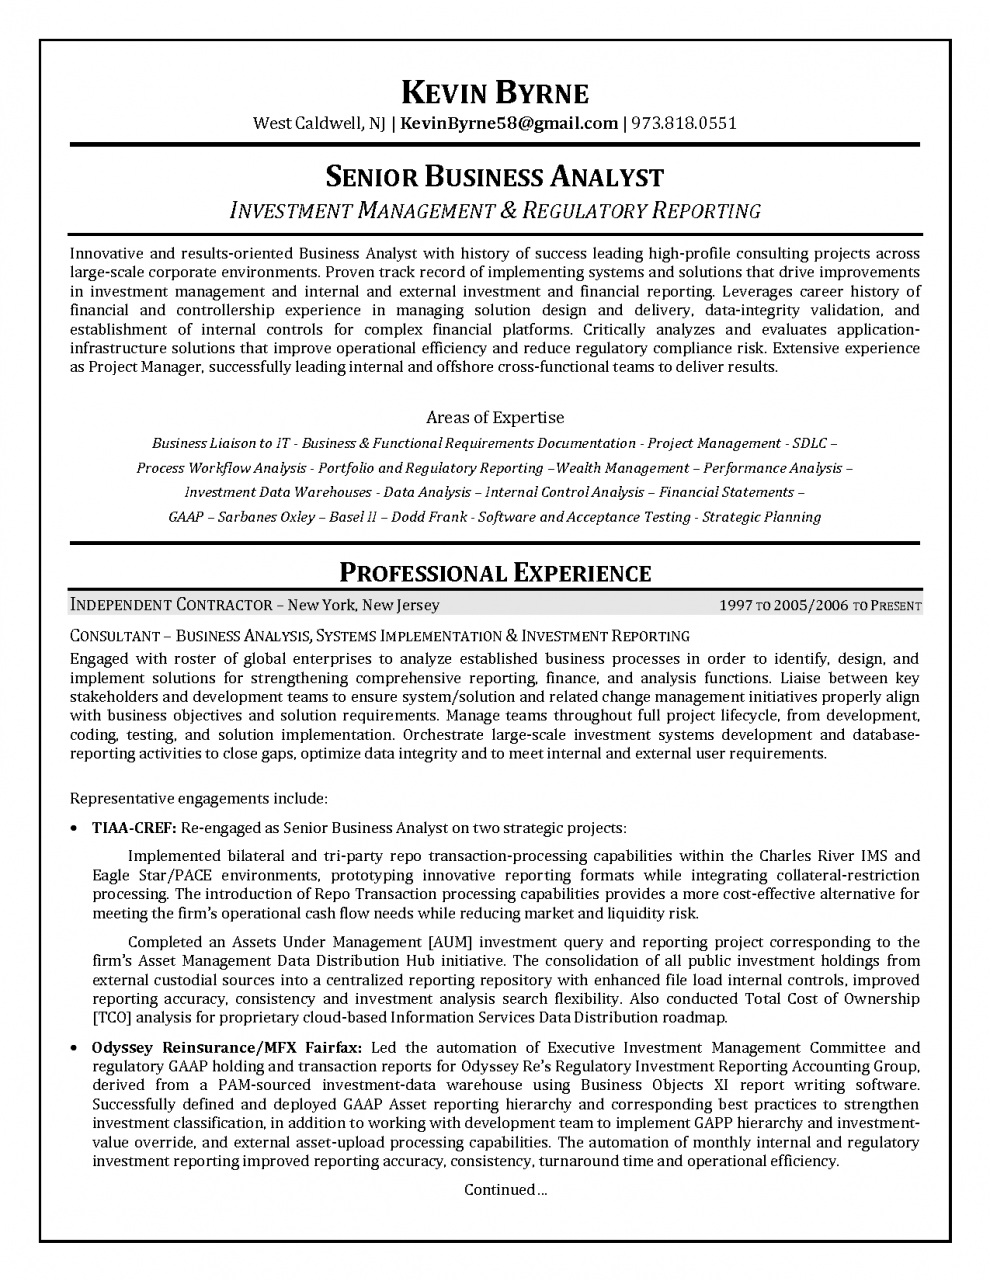 senior business analyst resume format business analyst senior resume workbloom 135933271 sample resume for business objects resume business analyst resume - Business Object Resume